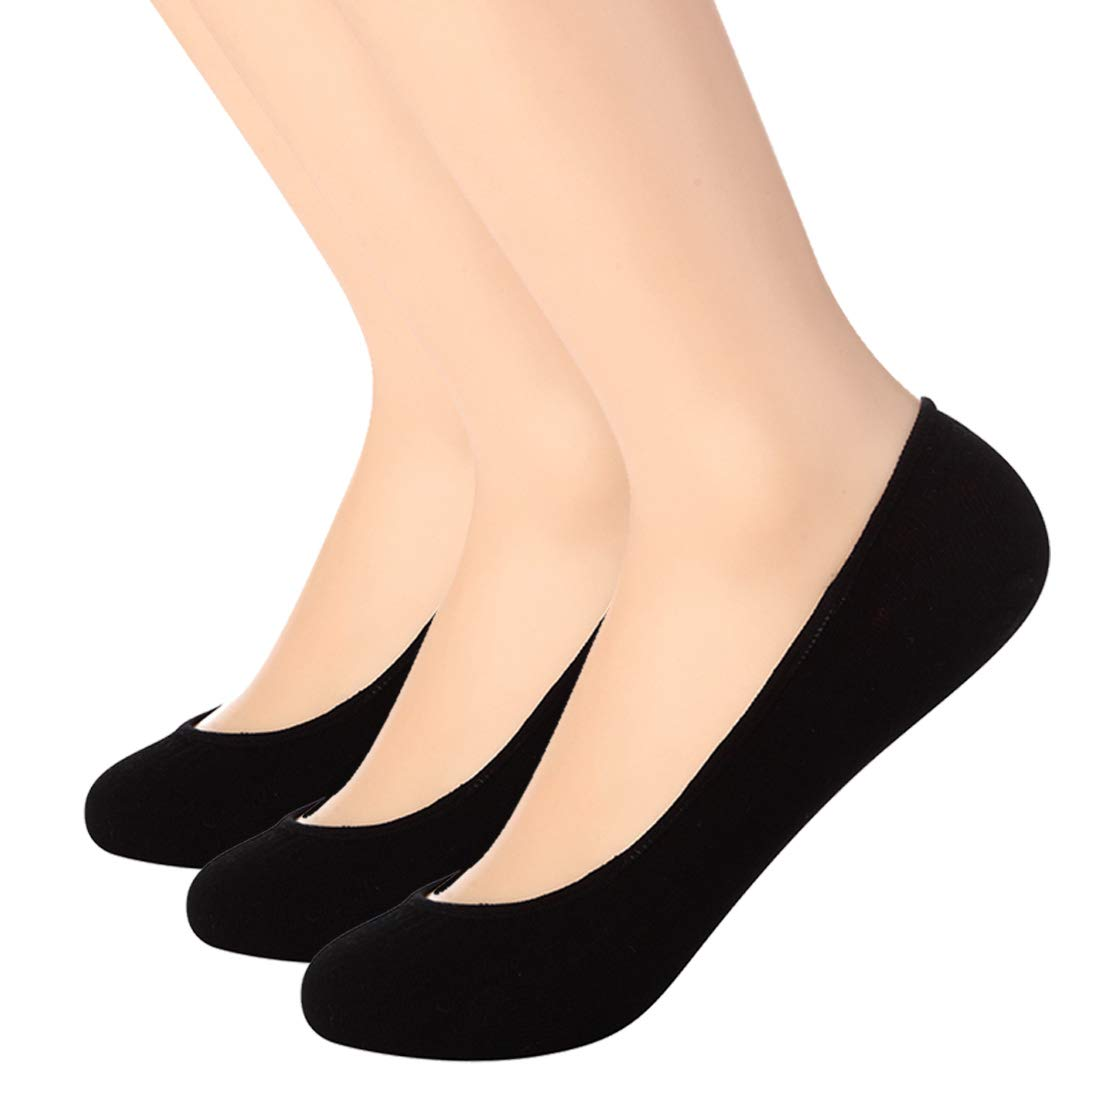 b4237661eb9 Ultra Low Cut Liner Socks Women No Show Non Slip Hidden Invisible for Flats  Boat Summer 3 Pairs at Amazon Women s Clothing store